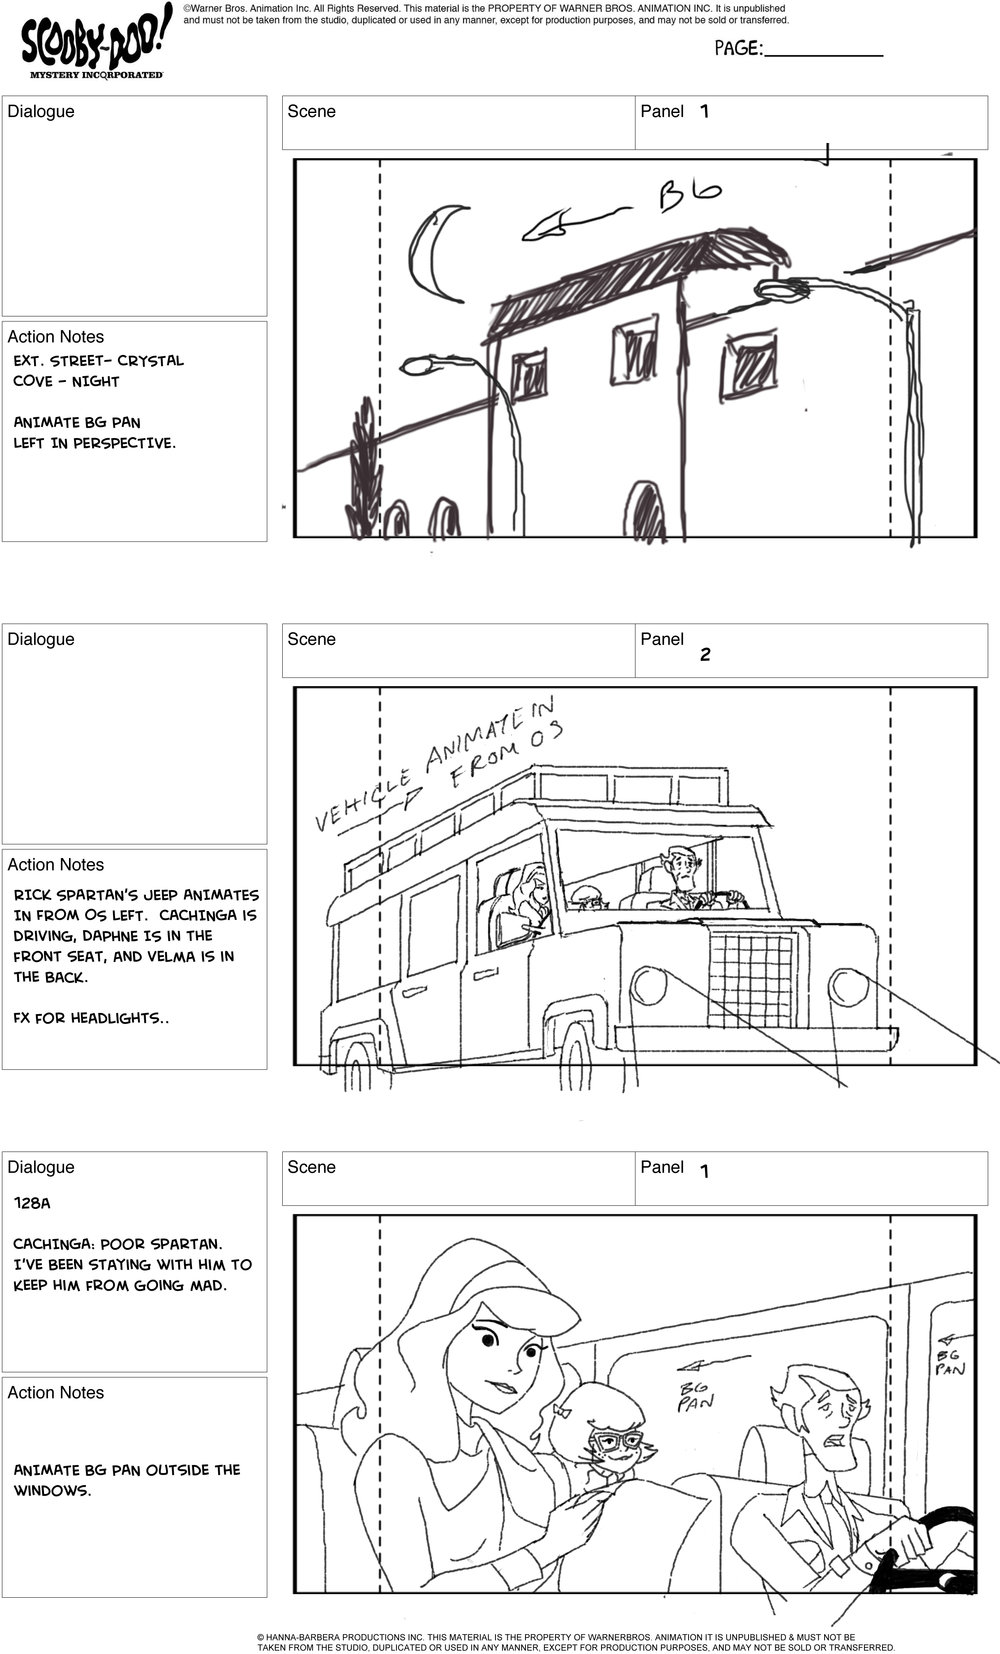 Scooby Storyboard Page 1.jpg